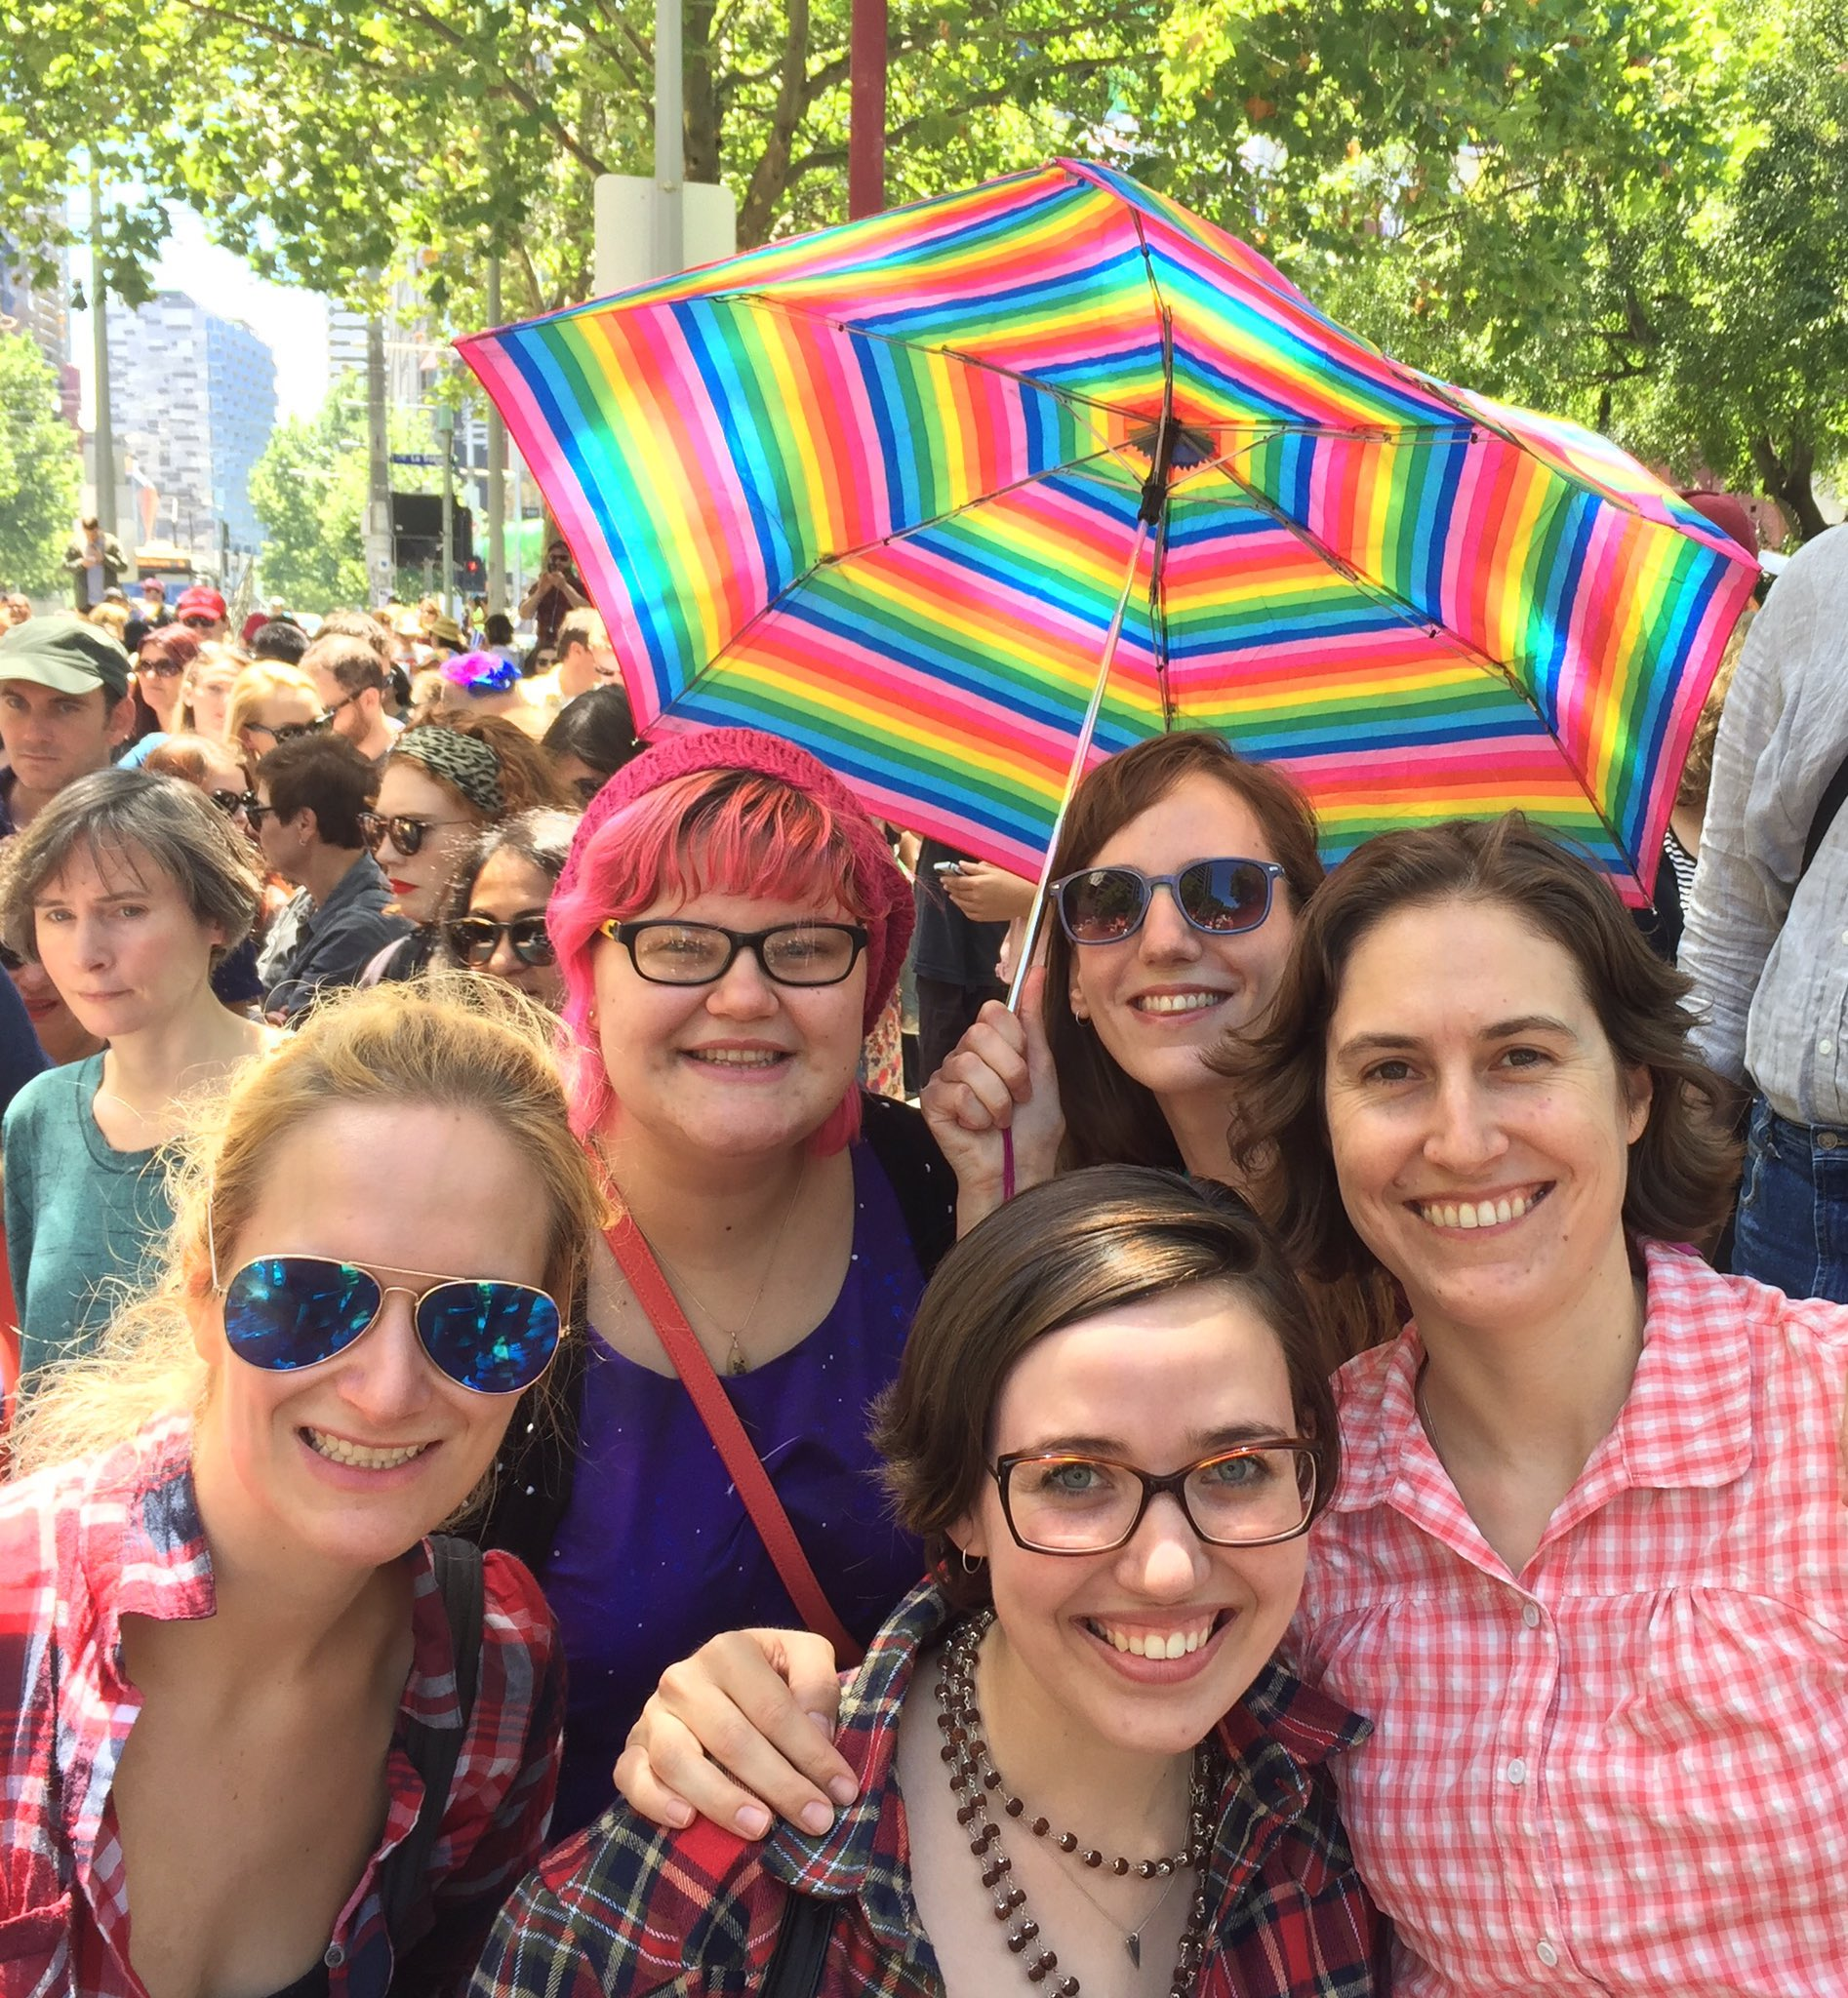 With my ladies at #WomensMarchMelbourne https://t.co/Ia7jQTzouJ